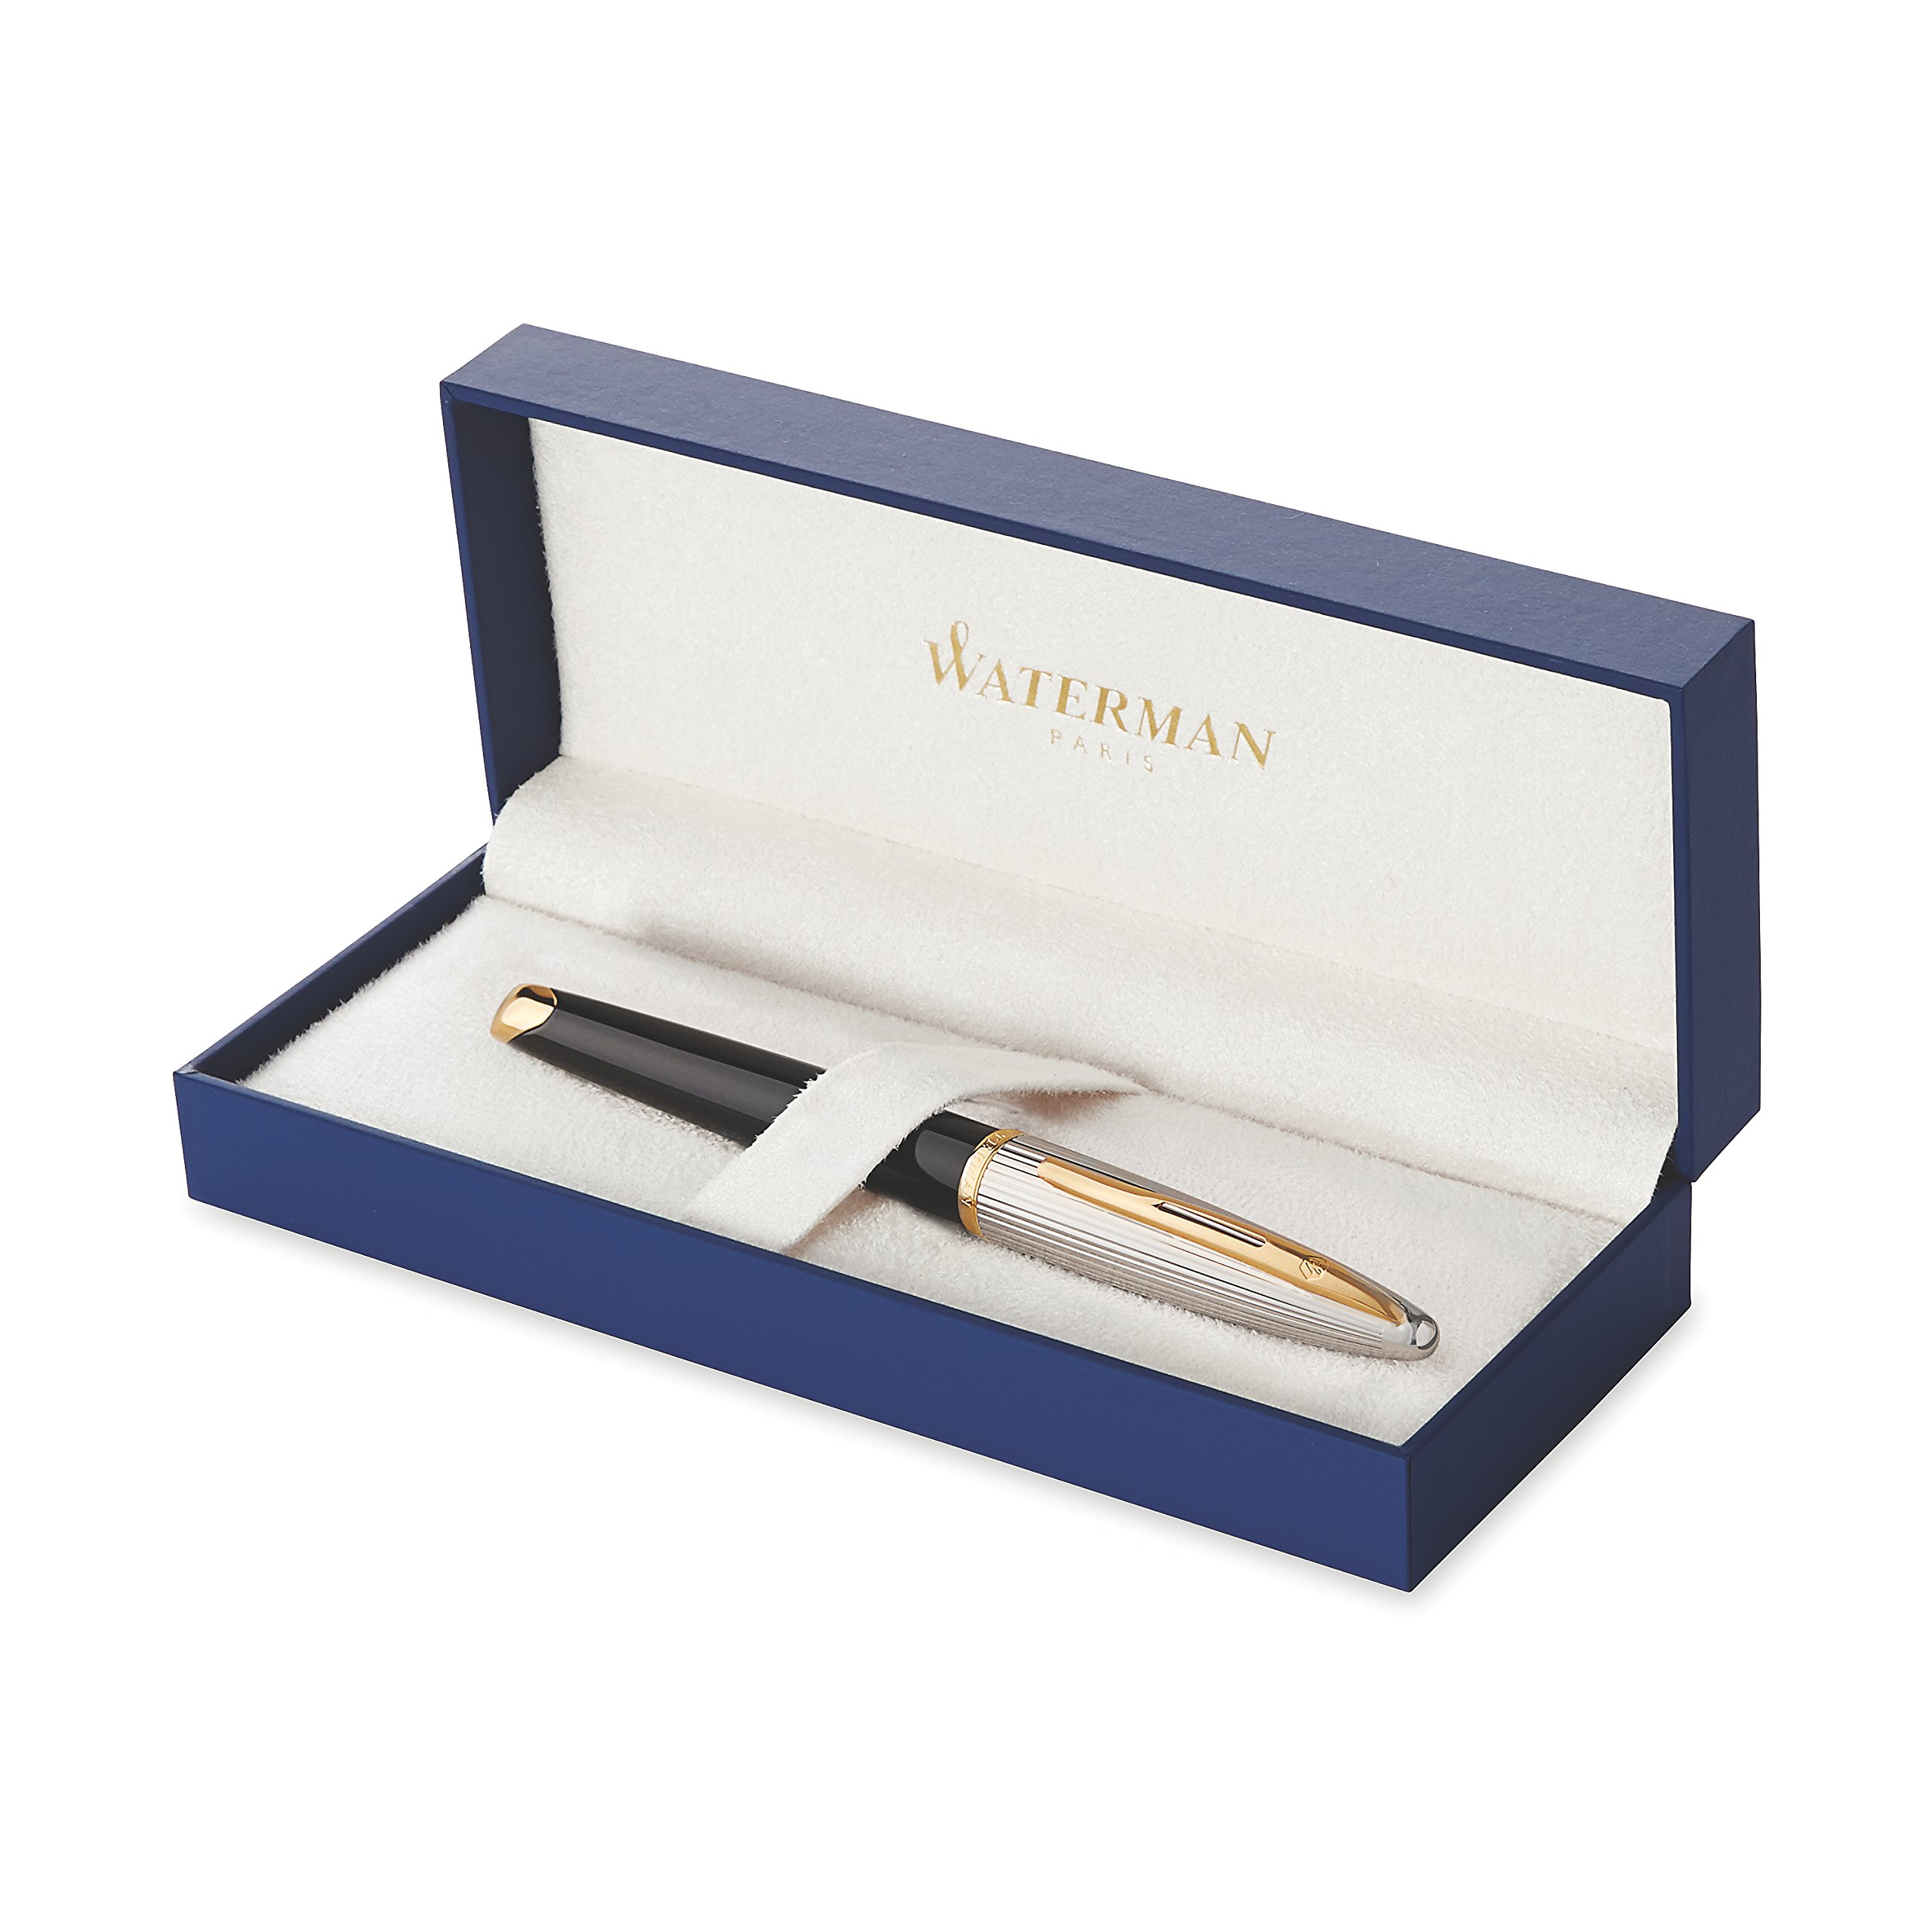 Waterman Carène Deluxe Rollerball Pen, Gloss Black & Silver Plated with 23k Gold Clip, Fine Point with Black Ink Cartridge, Gift Box by Waterman (Image #6)